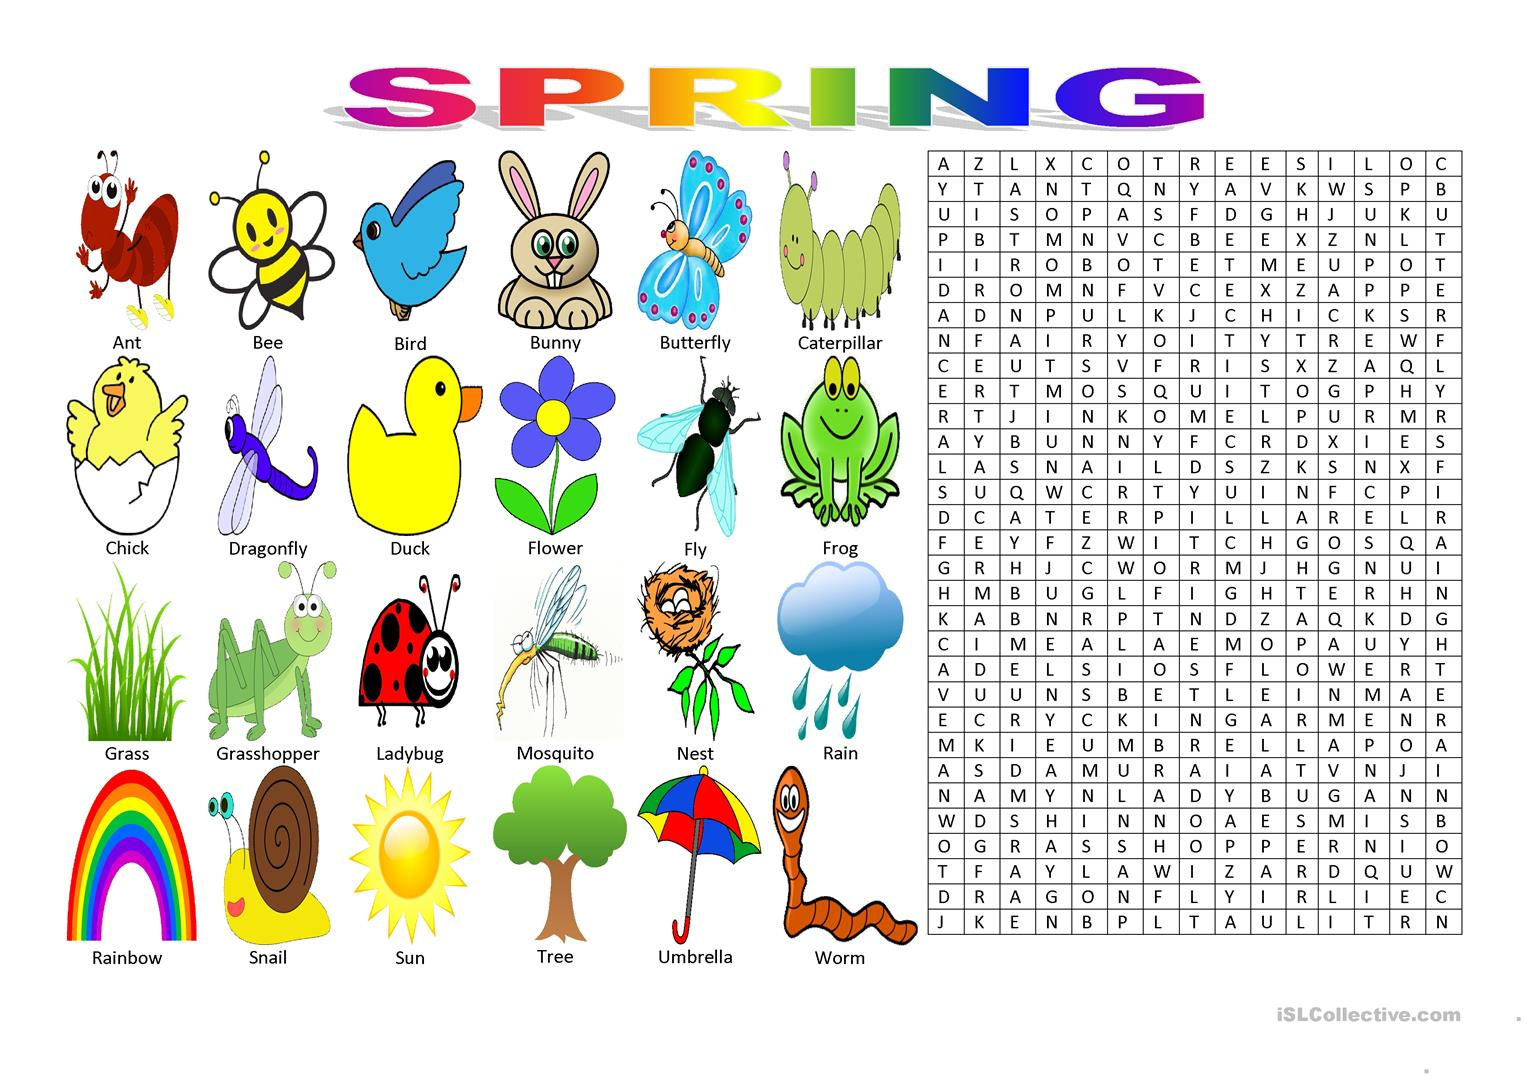 Spring Vocabulary Wordsearch Puzzle